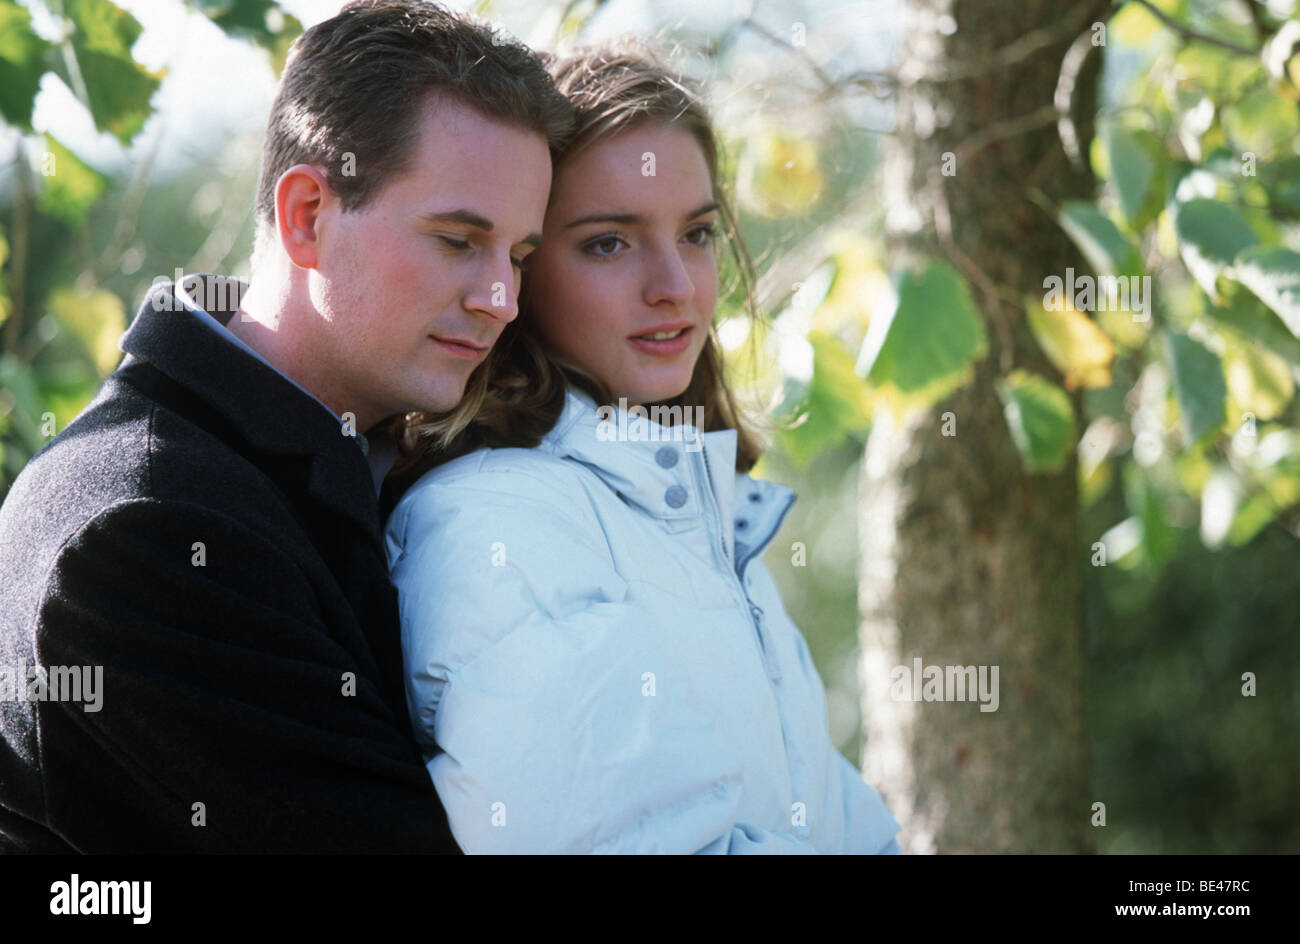 Couple in love but he is much older  SerieCVS100024117 - Stock Image